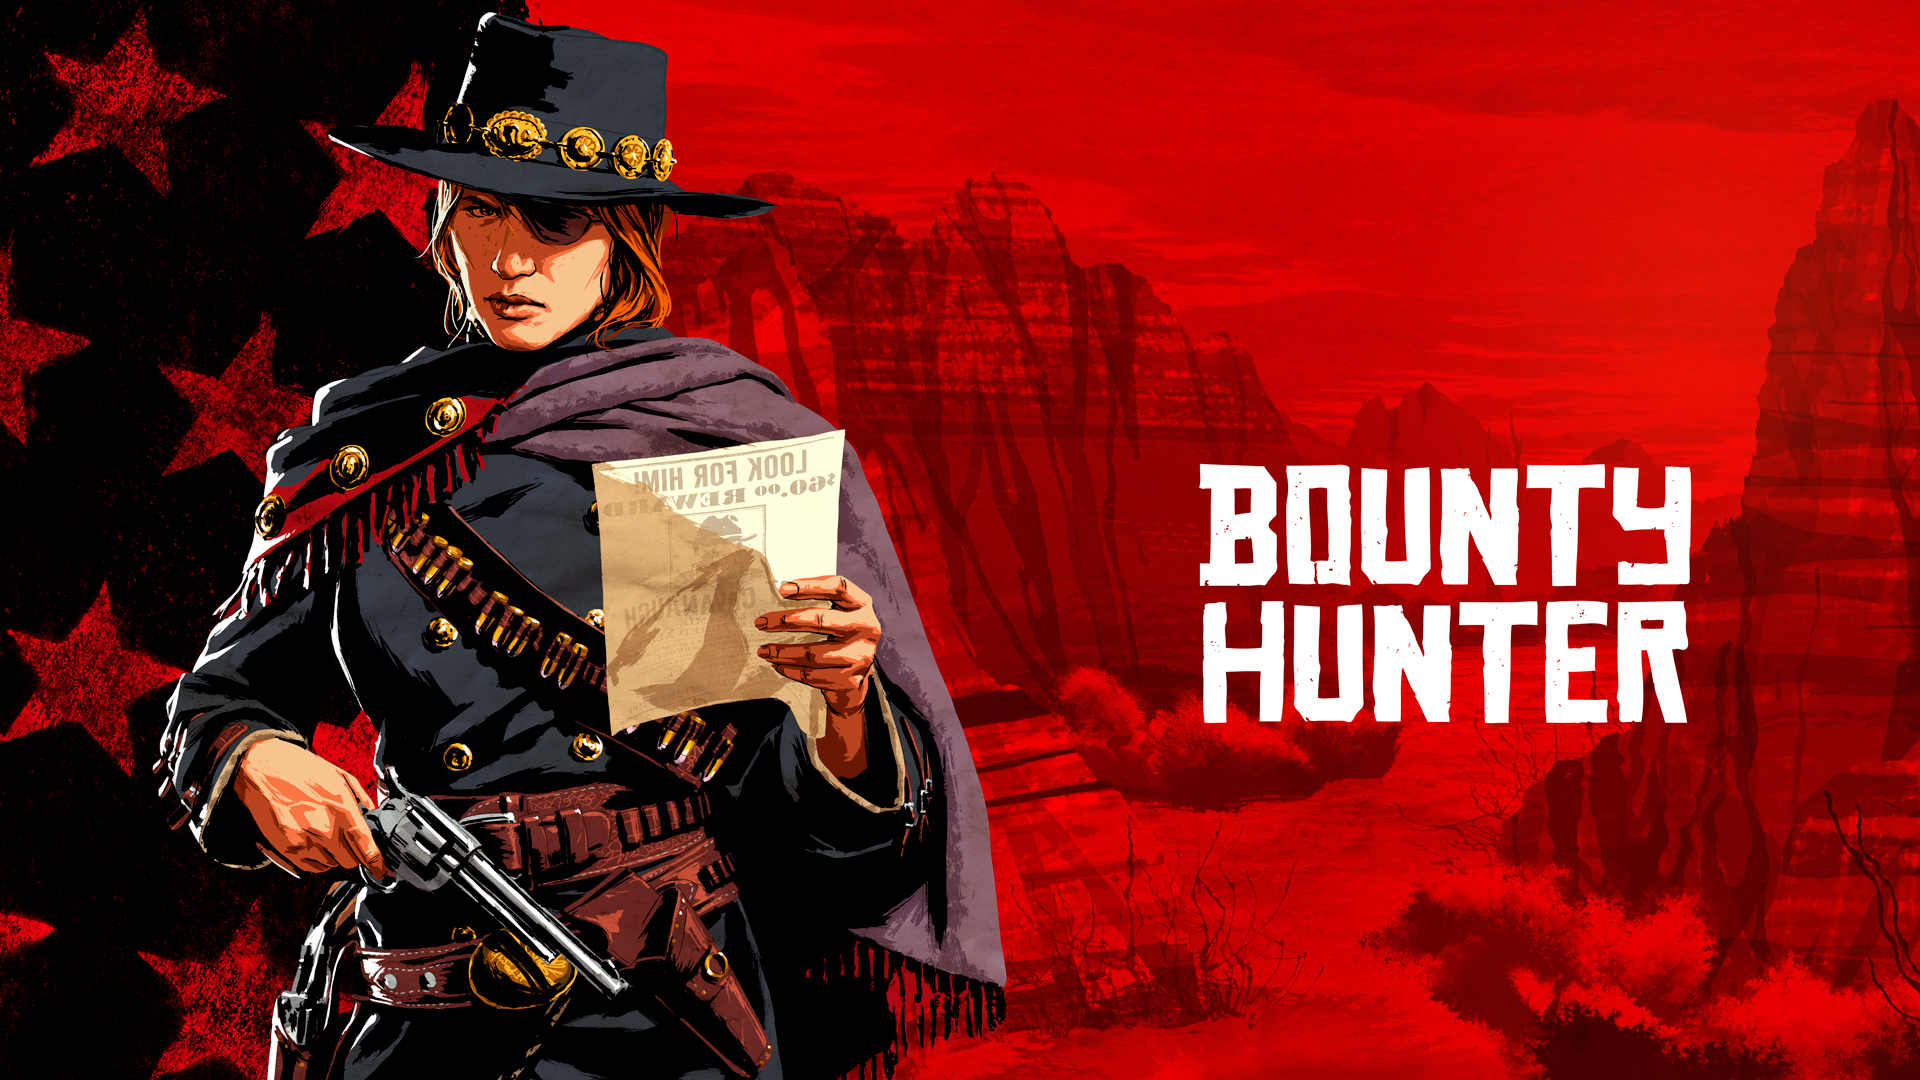 Red Dead Online: Frontier Pursuits trailer showcases the